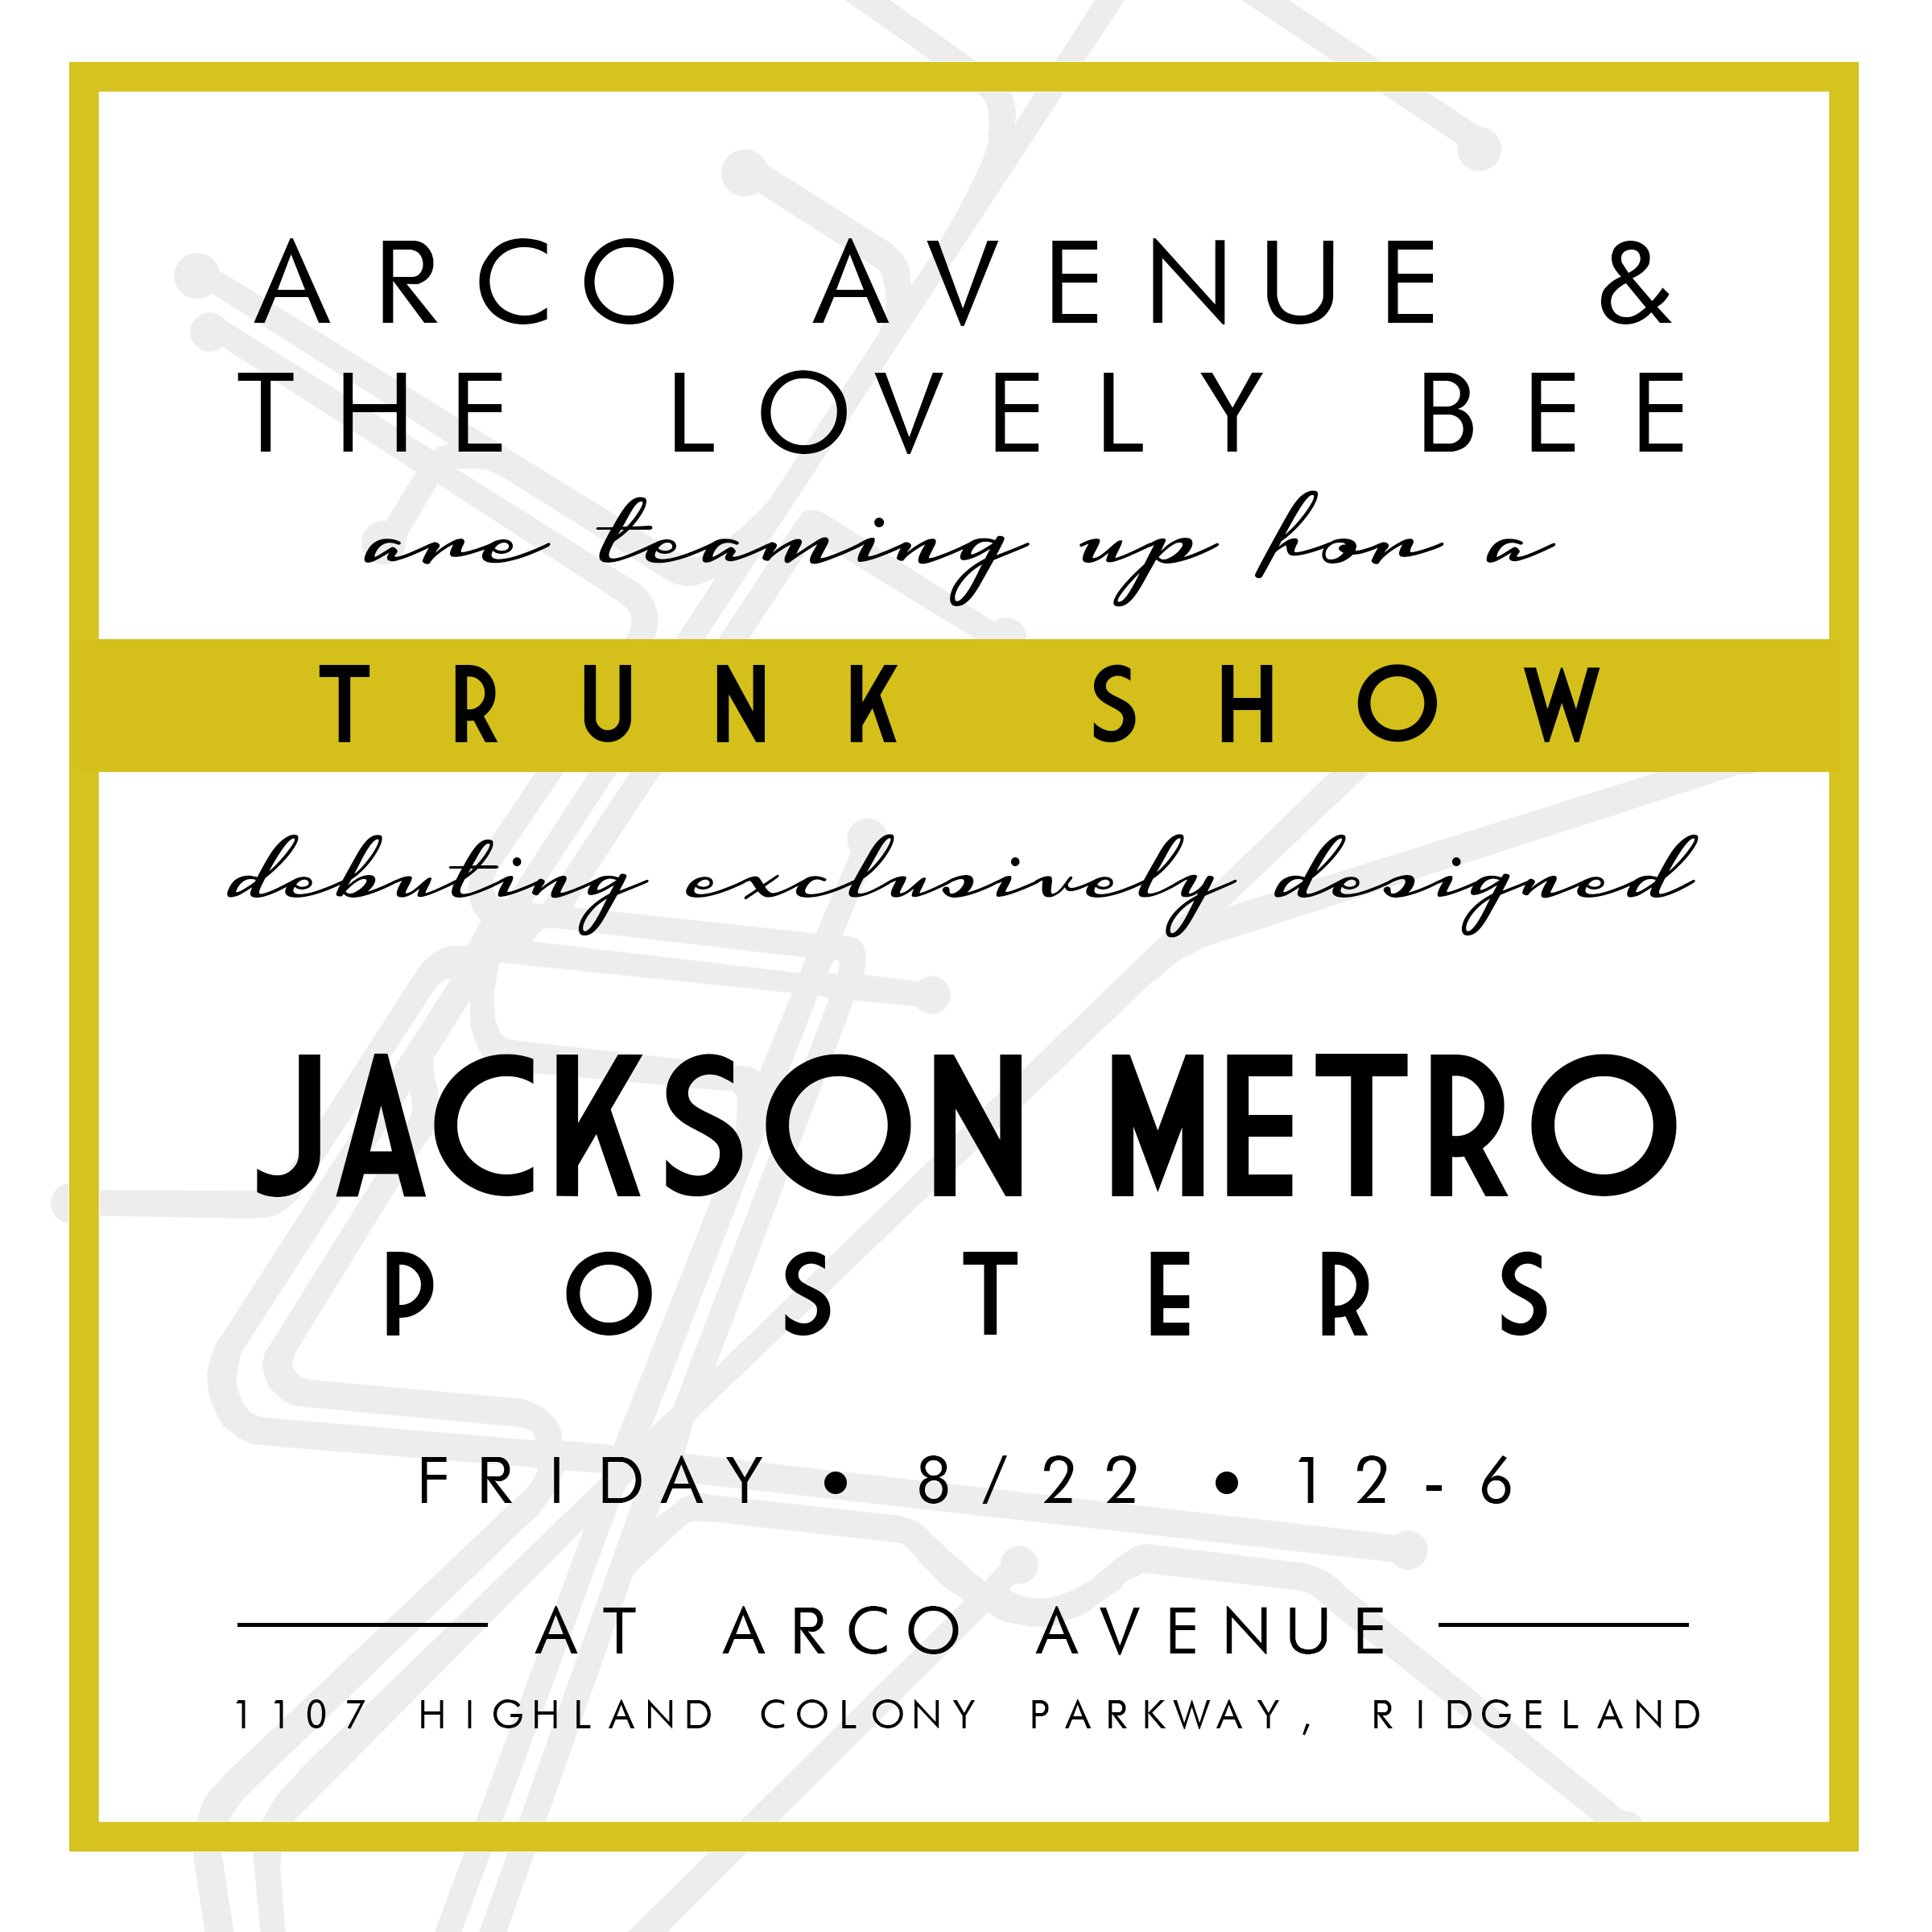 The Lovely Bee TRUNK SHOW at Arco Avenue on 8/22 debuting JACKSON METRO posters!